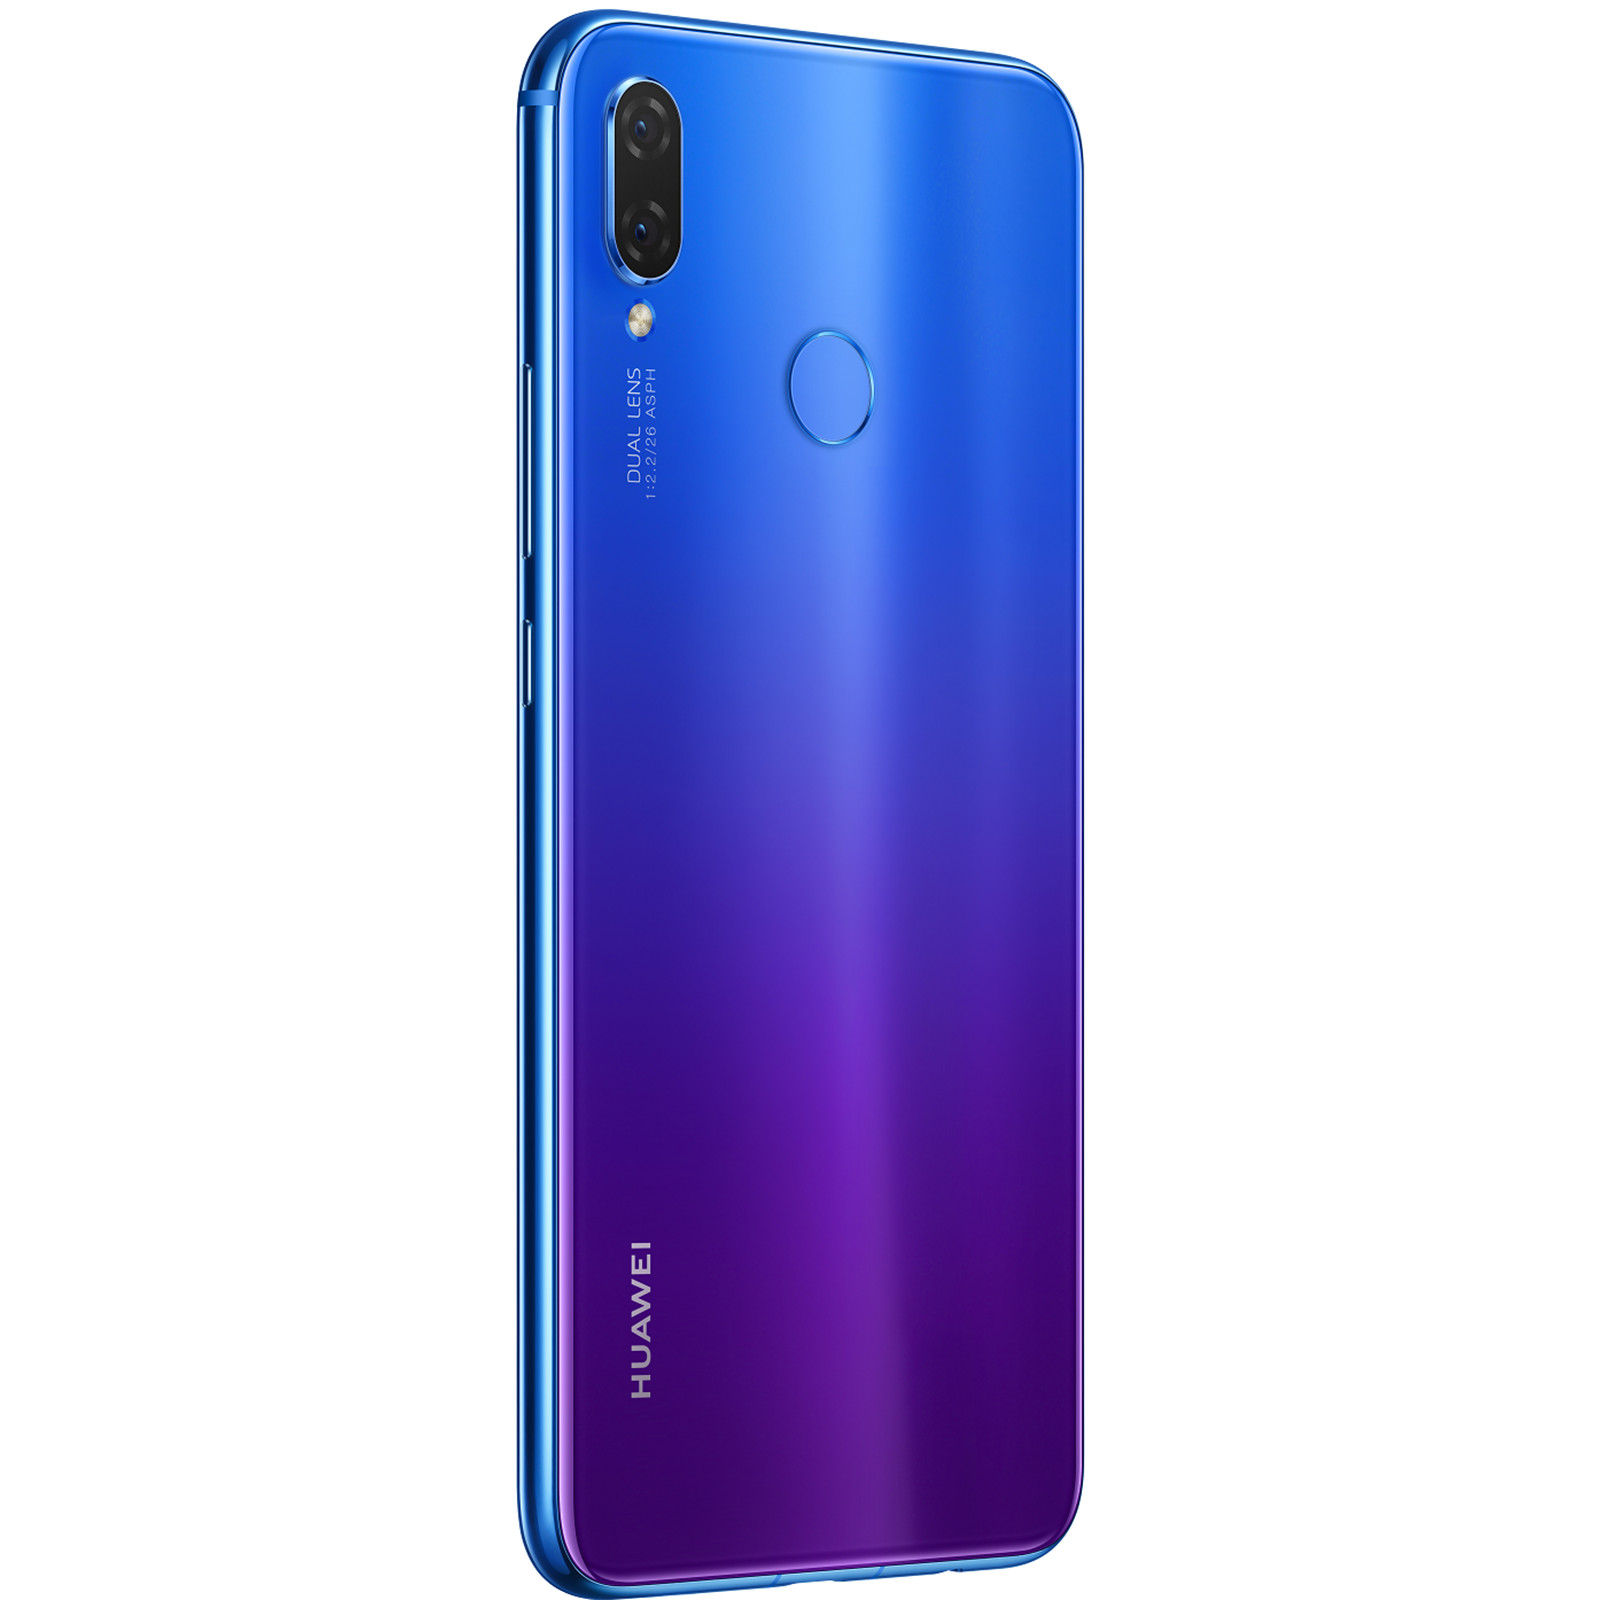 Buy the Huawei Nova 3i Smartphone - 128GB Iris Purple 2 Year